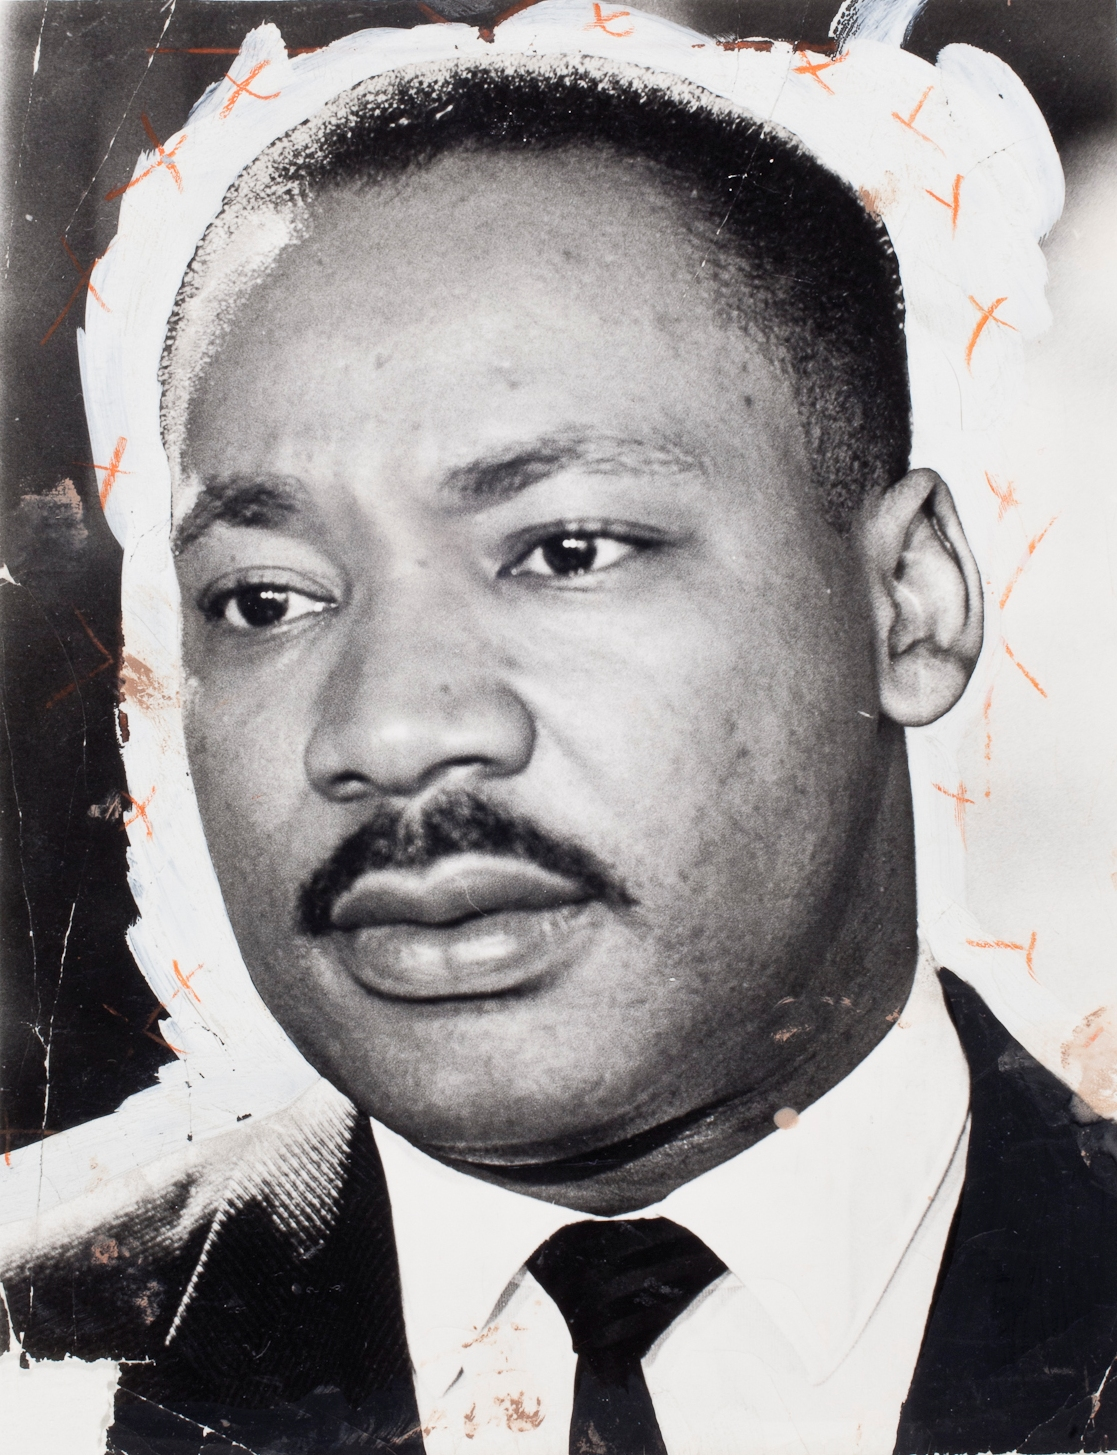 the wisdom of martin luther king jr Martin luther king, jr was one of the pivotal leaders of the american civil rights movement king was a baptist minister, one of the few leadership roles available to black men at the time he became a civil rights activist early in his career.